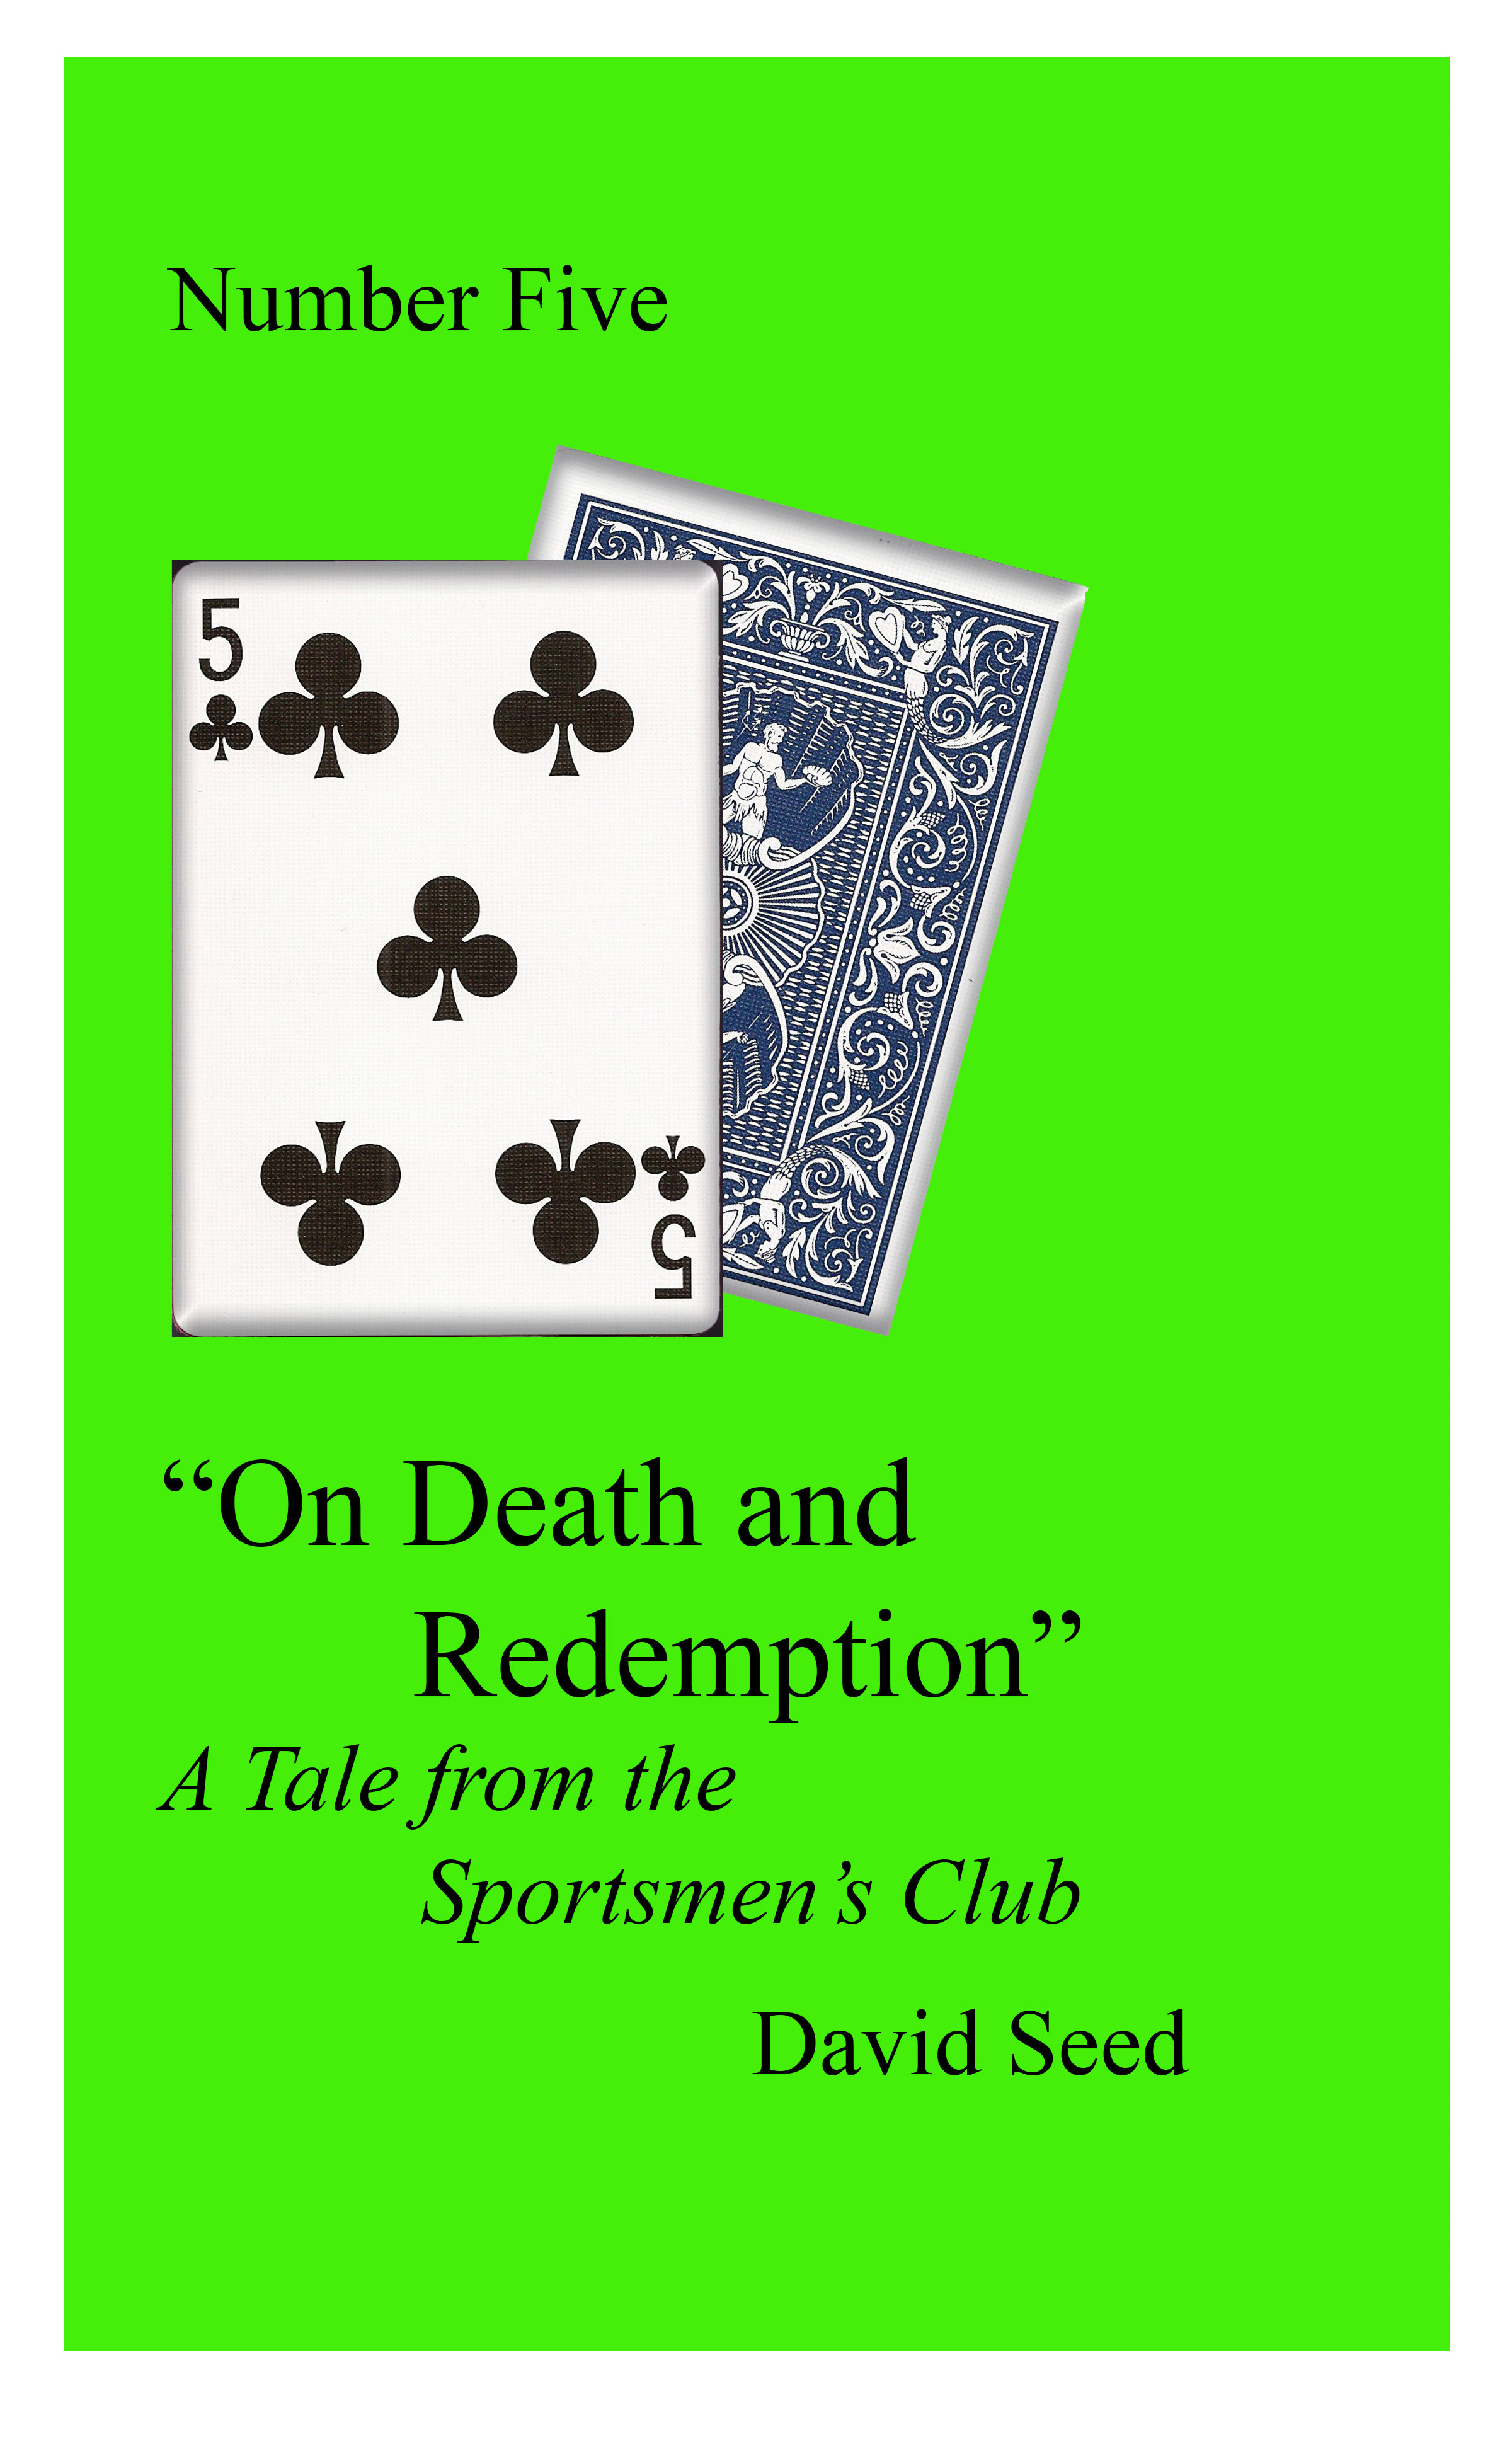 On Death and Redemption: A Tale of the Sportsmen's Club